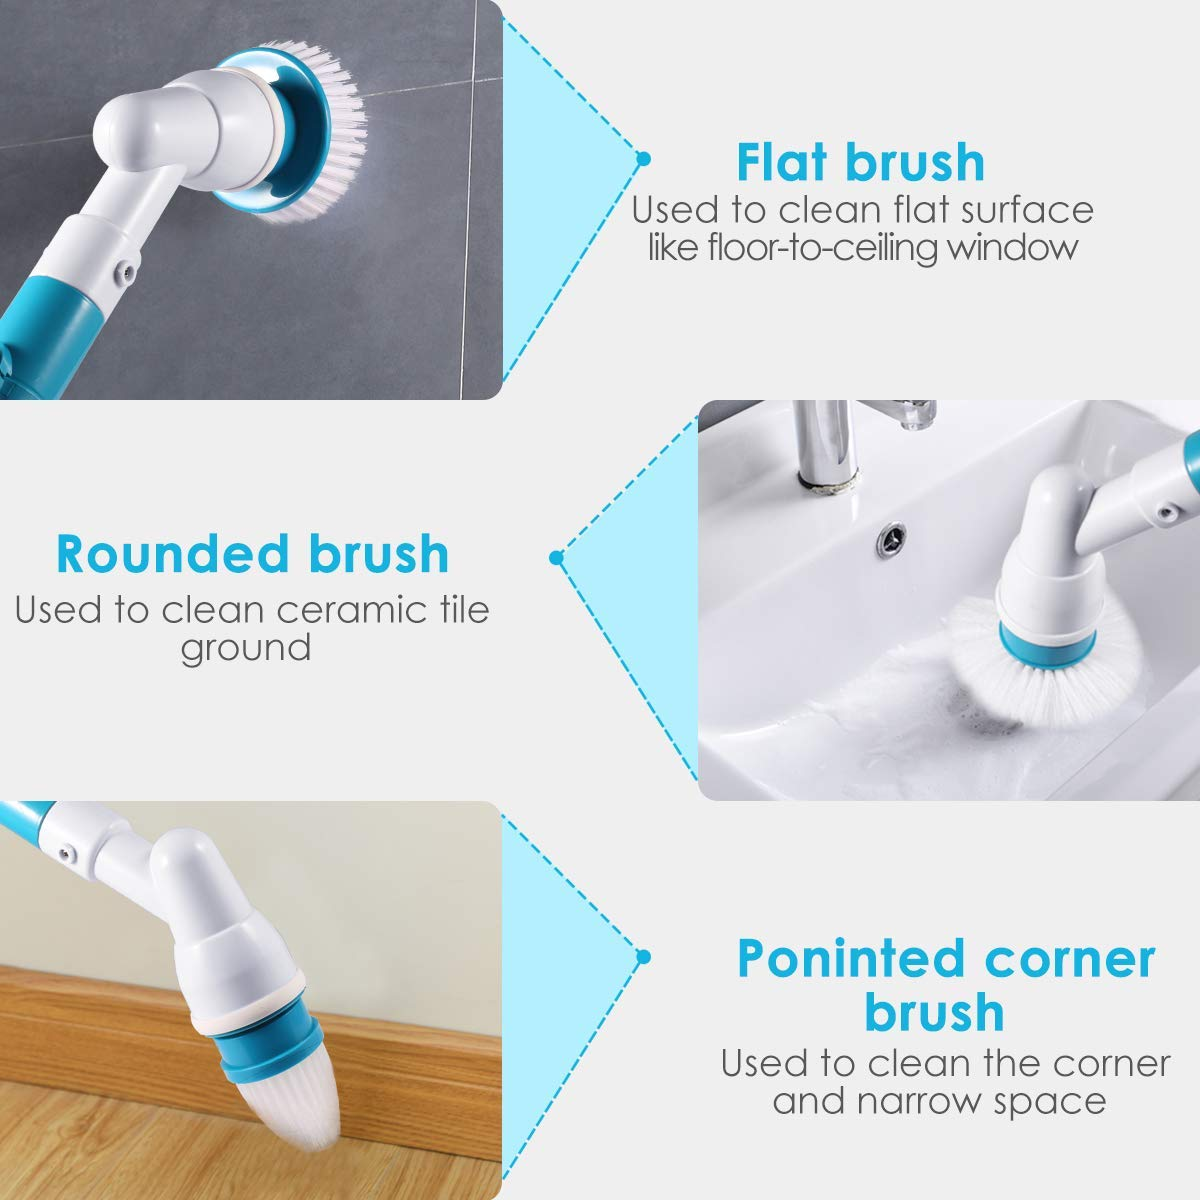 Spin Scrubber, 360 Cordless Tub and Tile Scrubber, Multi-Purpose Power Surface Cleaner with 3 Replaceable Cleaning Scrubber Brush Heads, 1 Extension Arm and Adapter by Bert (Image #4)